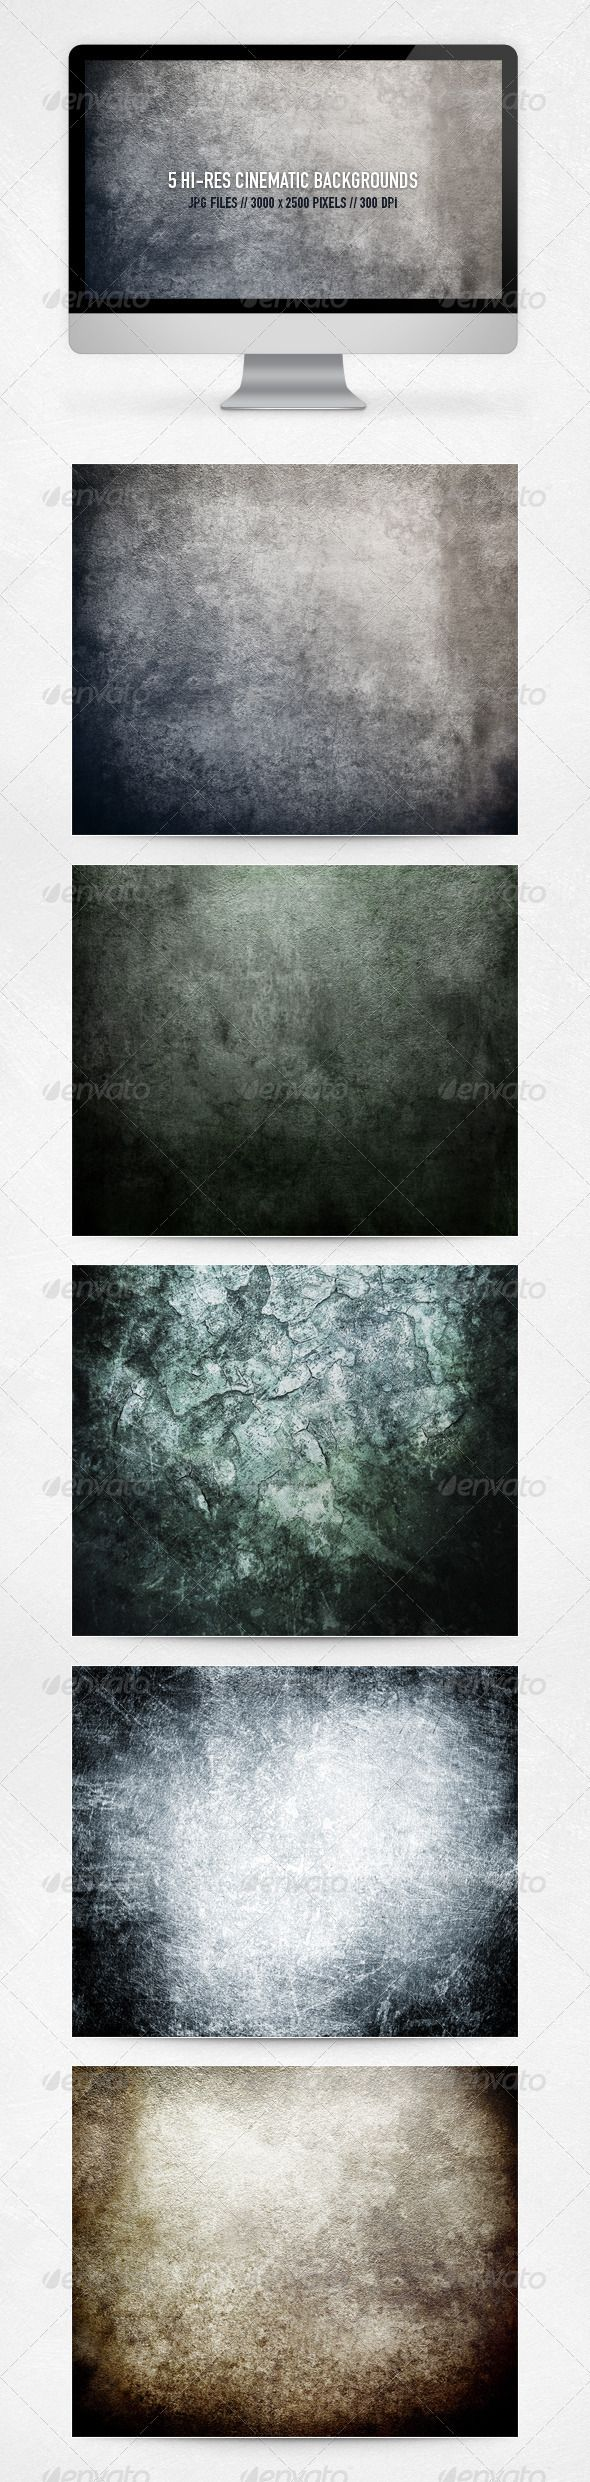 Cinematic Backgrounds - #Backgrounds #Graphics Download here:  https://graphicriver.net/item/cinematic-backgrounds/3038149?ref=alena994